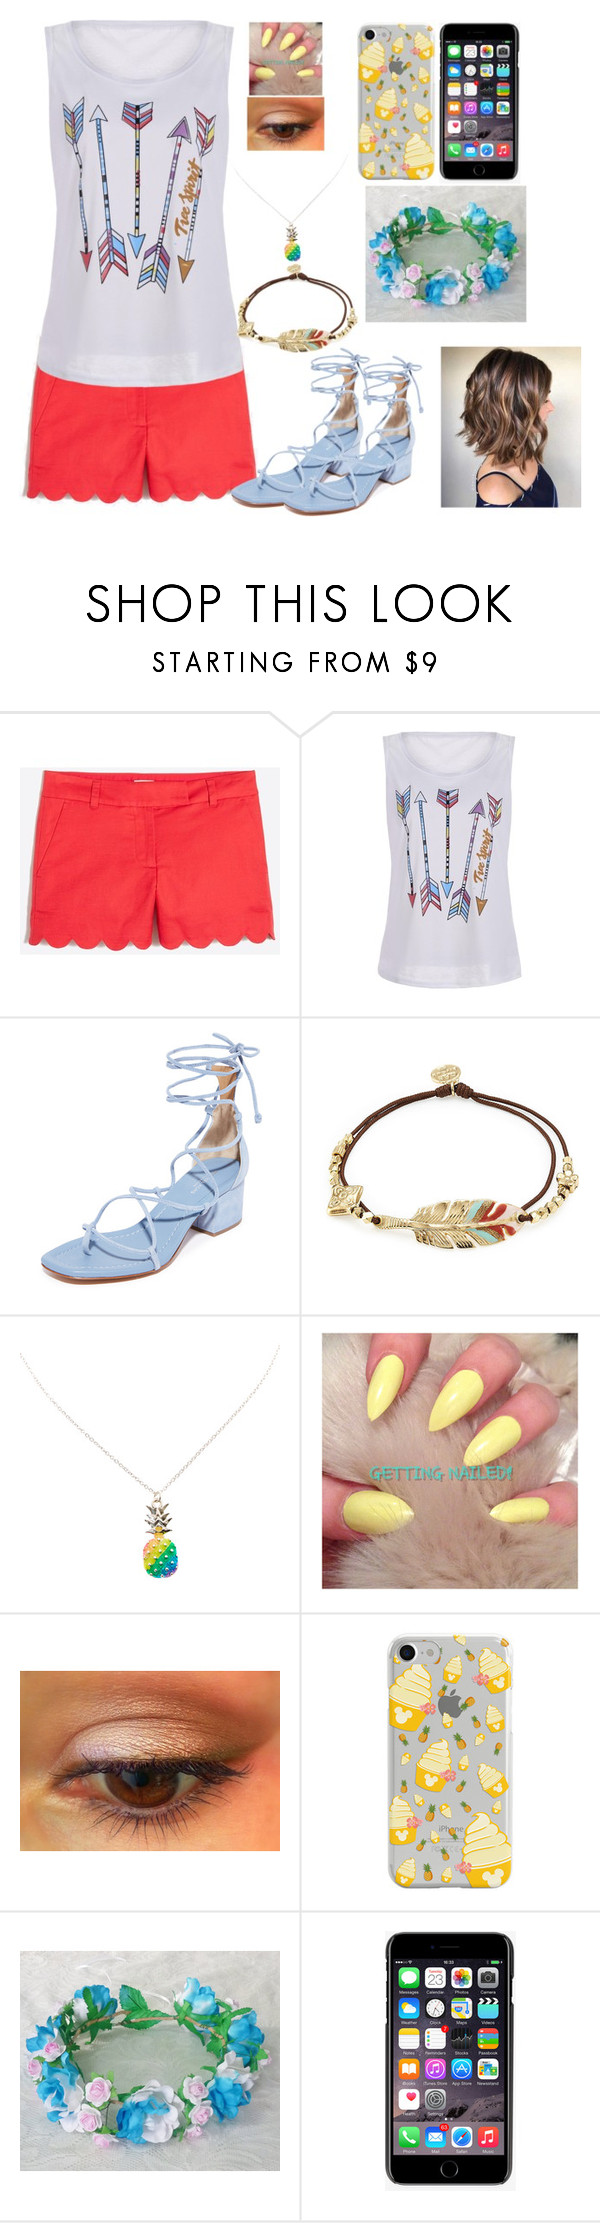 """""""It's Summer Time!"""" by kiara-fleming ❤ liked on Polyvore featuring J.Crew, Michael Kors, Gas Bijoux, Disney and Dolce&Gabbana"""